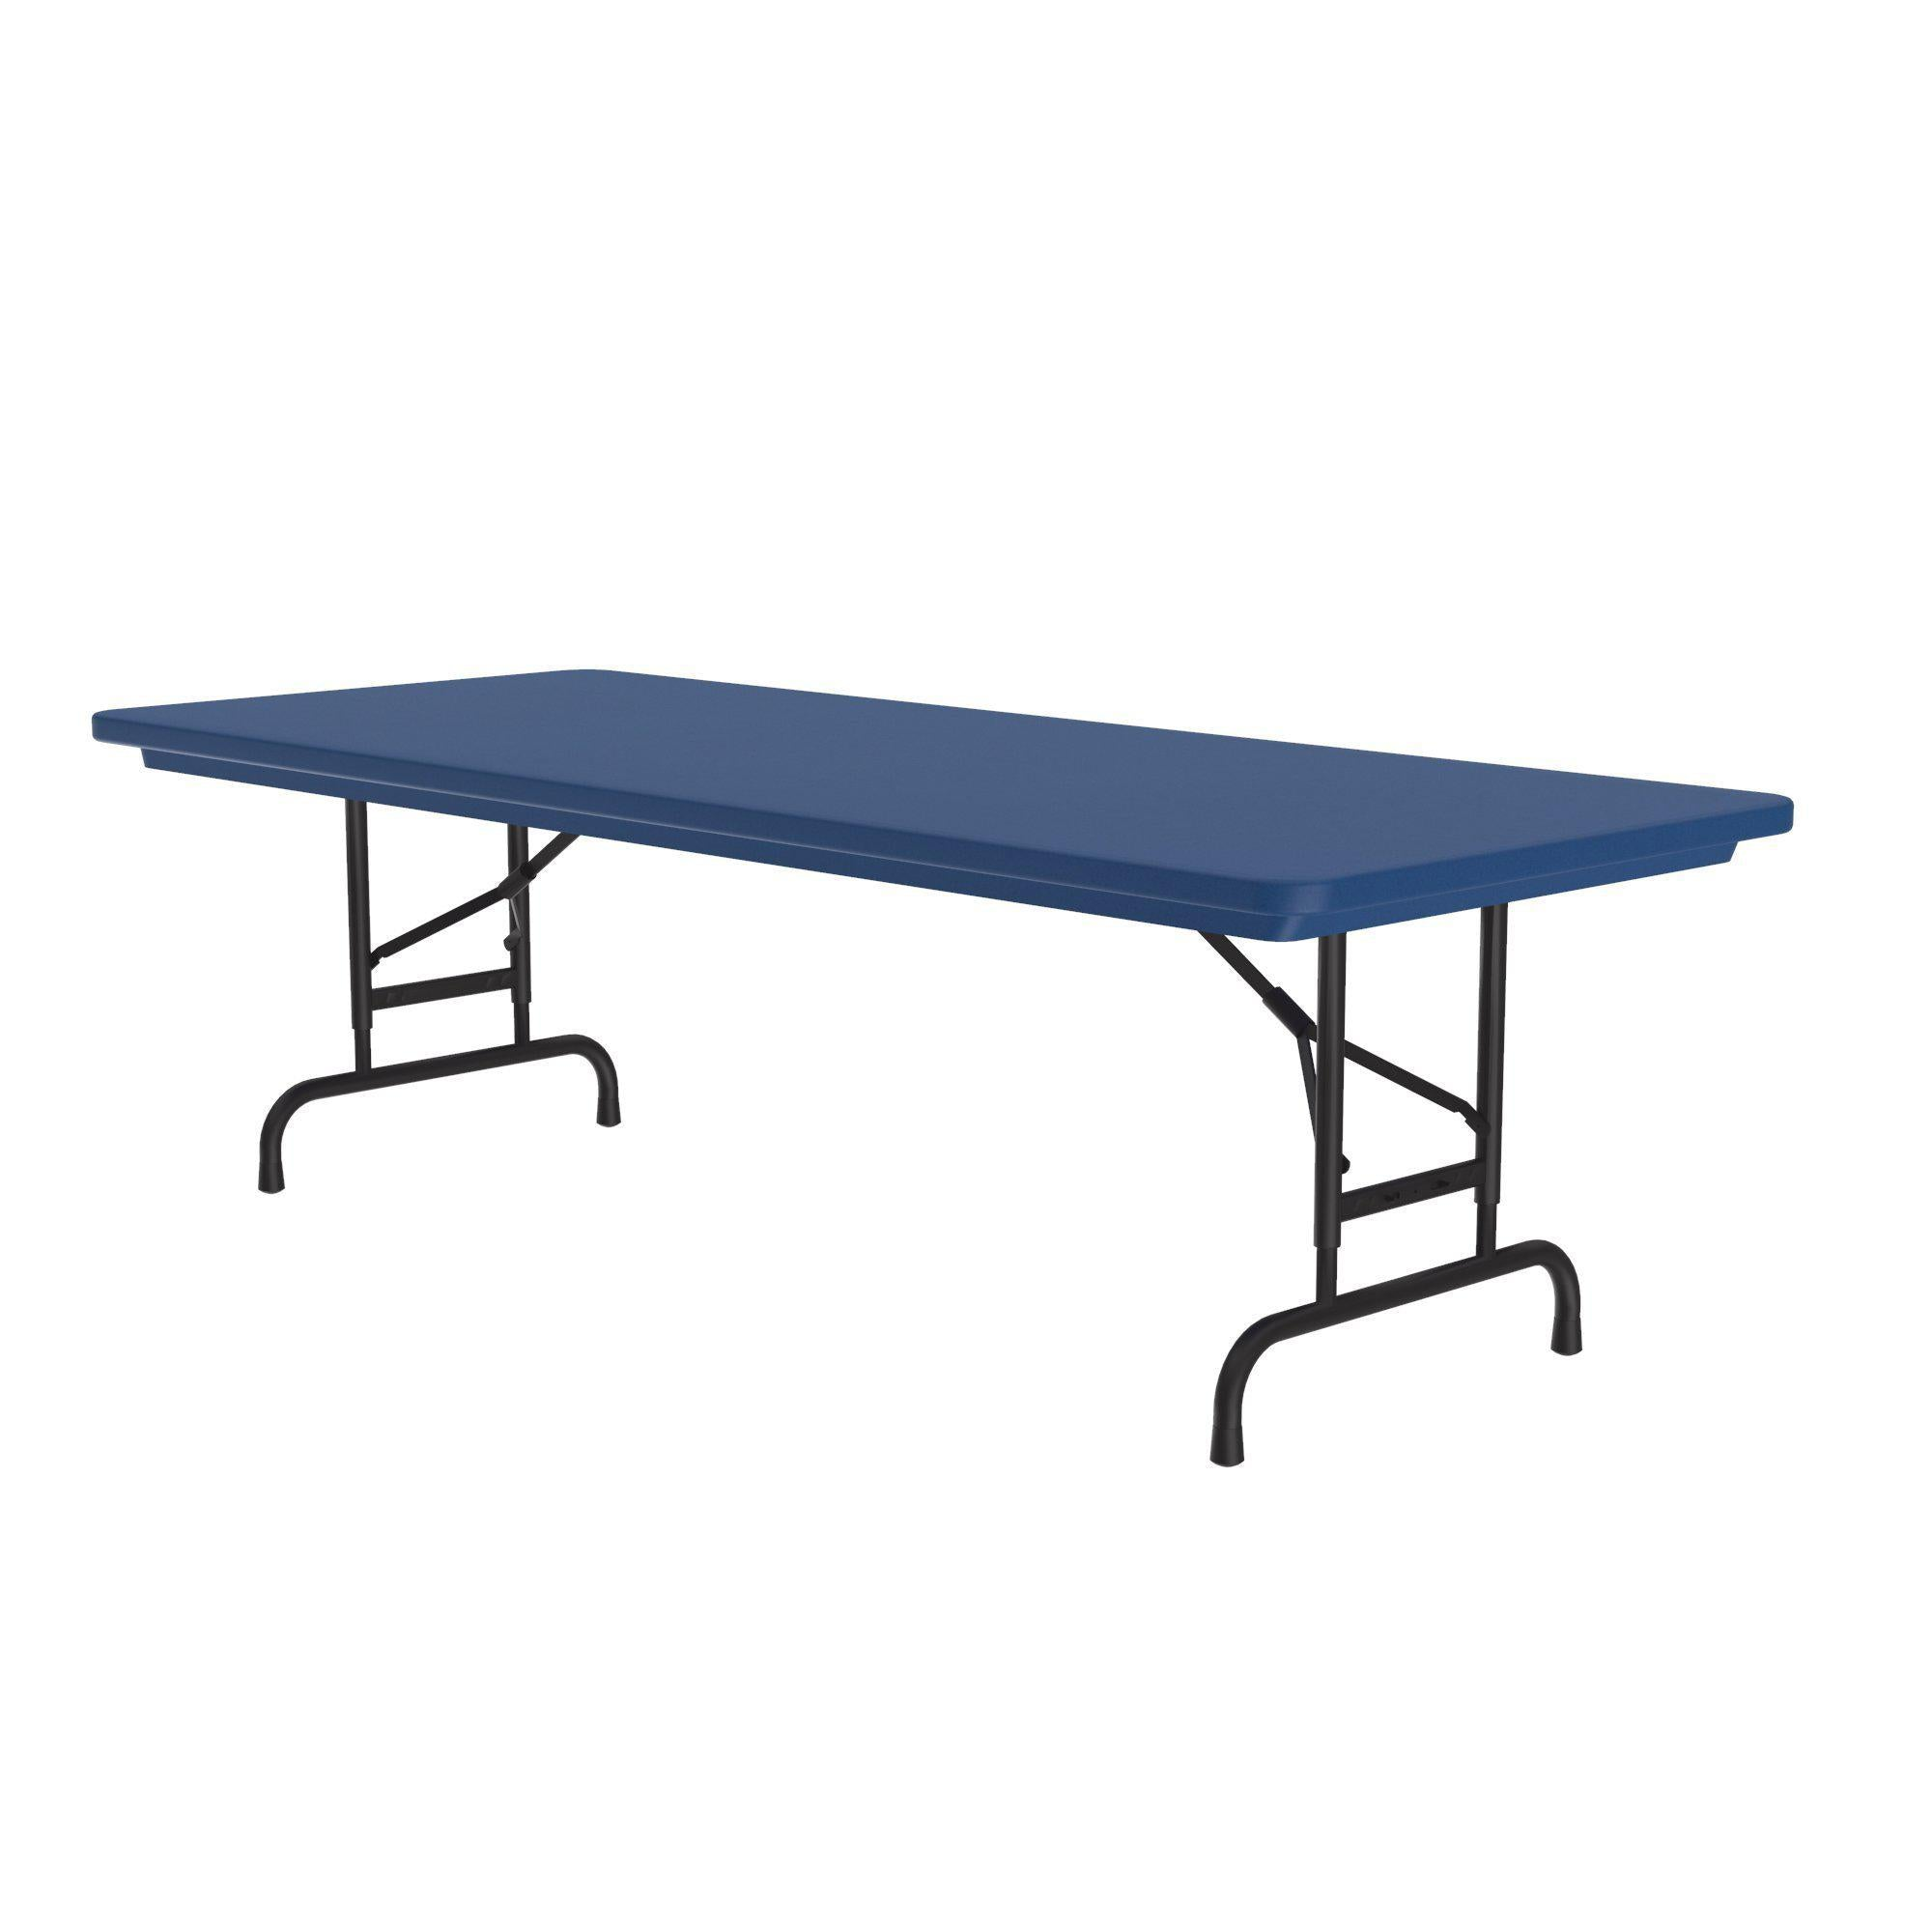 Heavy Duty Commercial Use Blow Molded Folding Table, Primary Colors, Adjustable Height, 30 x 60